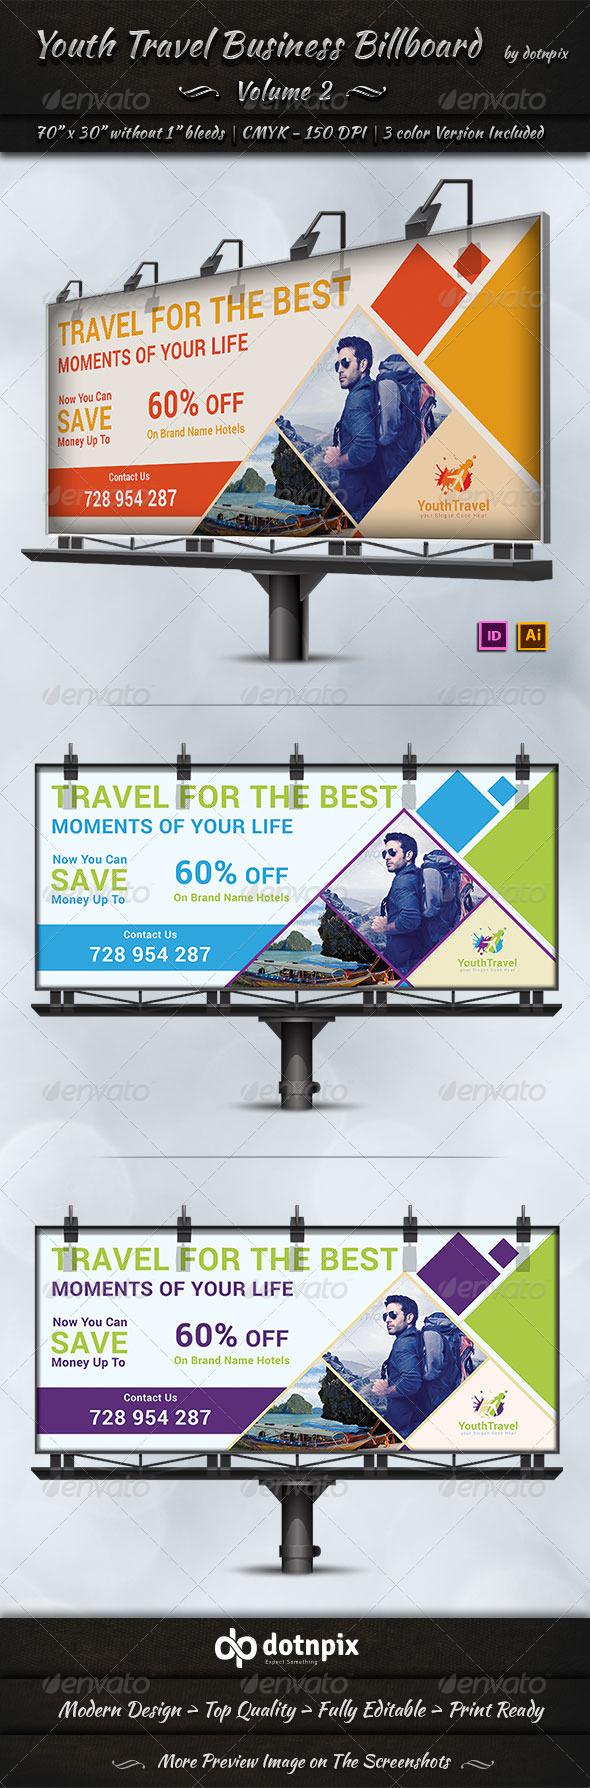 GraphicRiver Youth Travel Business Billboard Volume 2 6907824